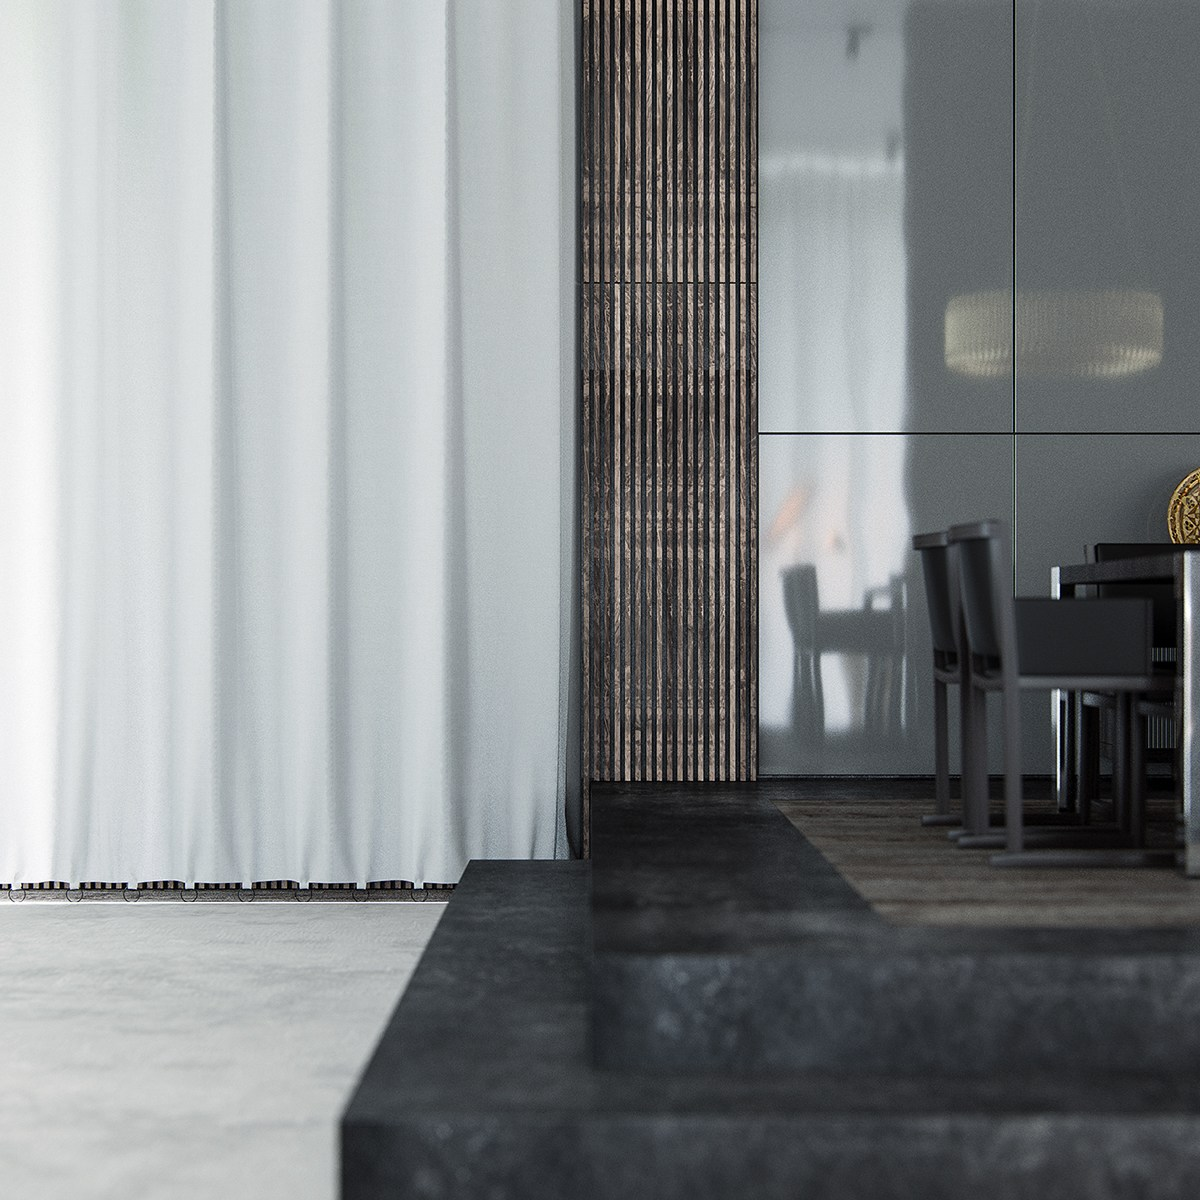 Selection Of Luxury Interior Materials - 3 natural interior concepts with floor to ceiling windows